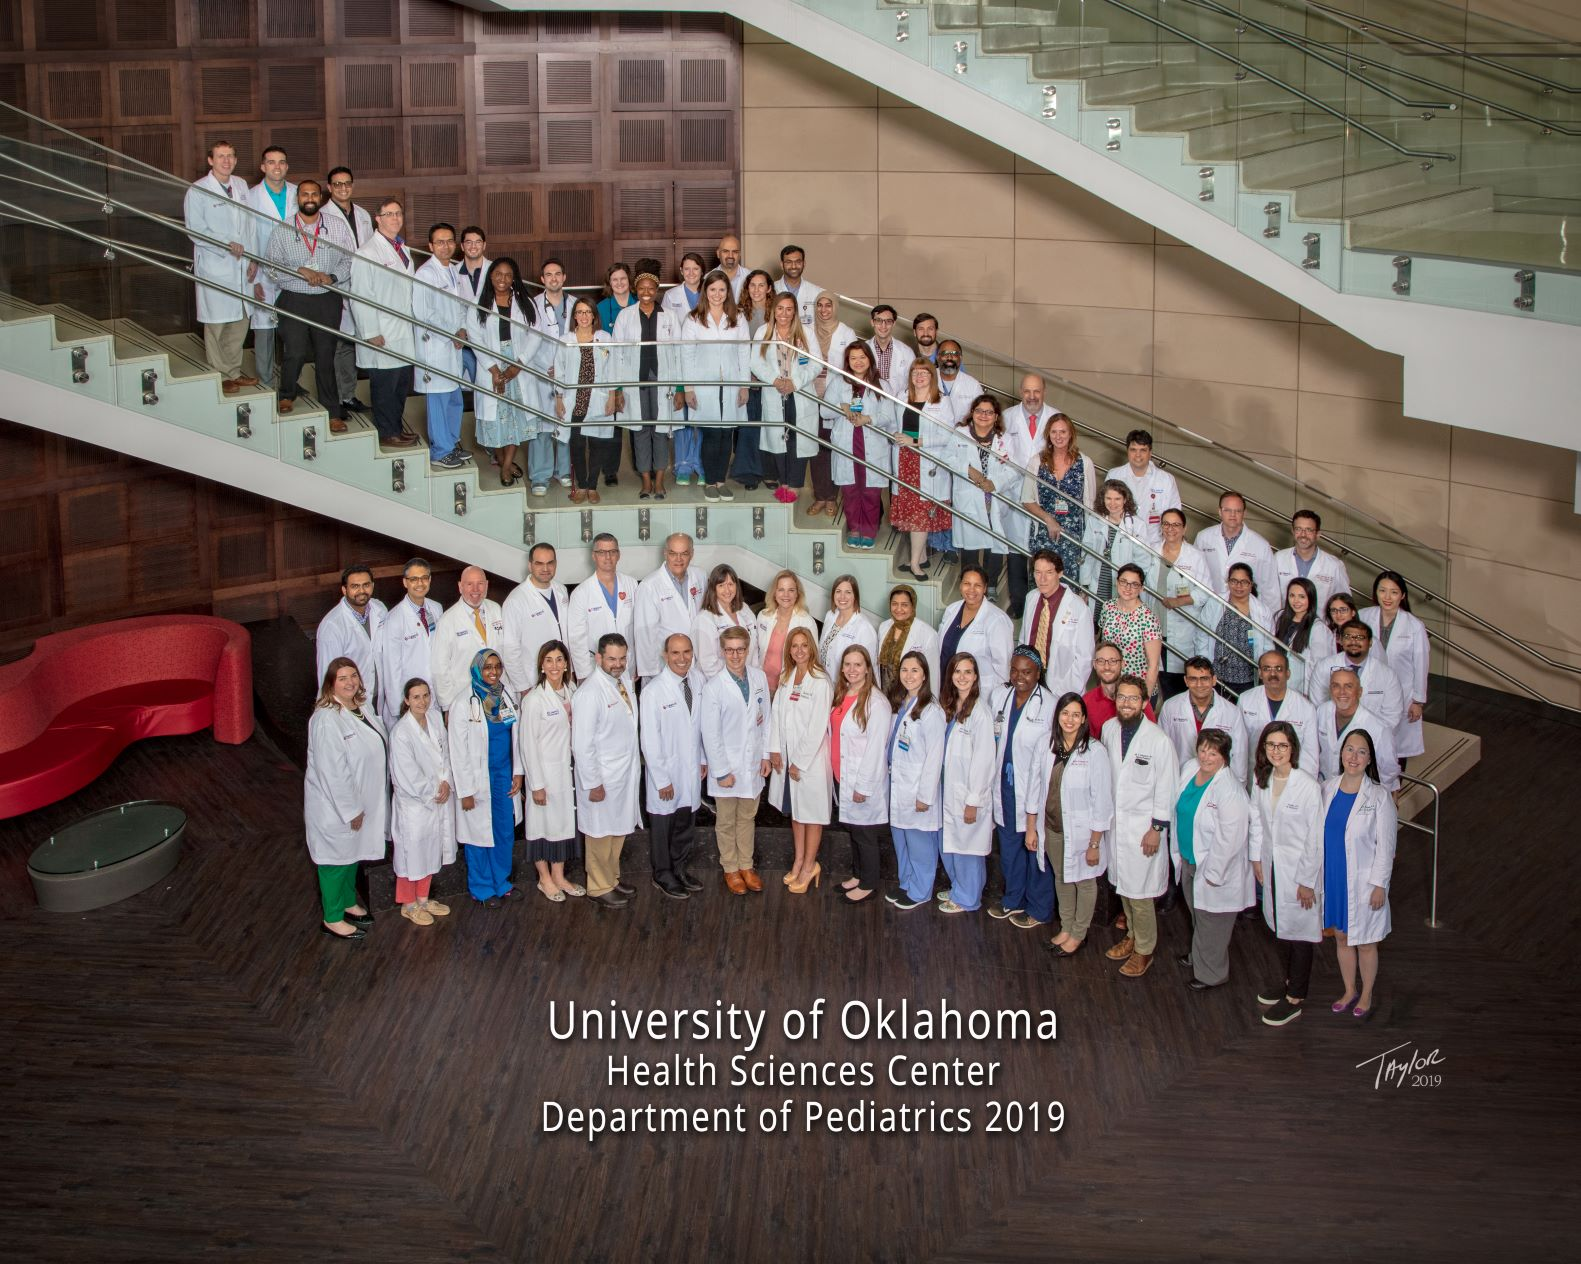 2019-department-of-pediatrics-end-of-year-group-photo